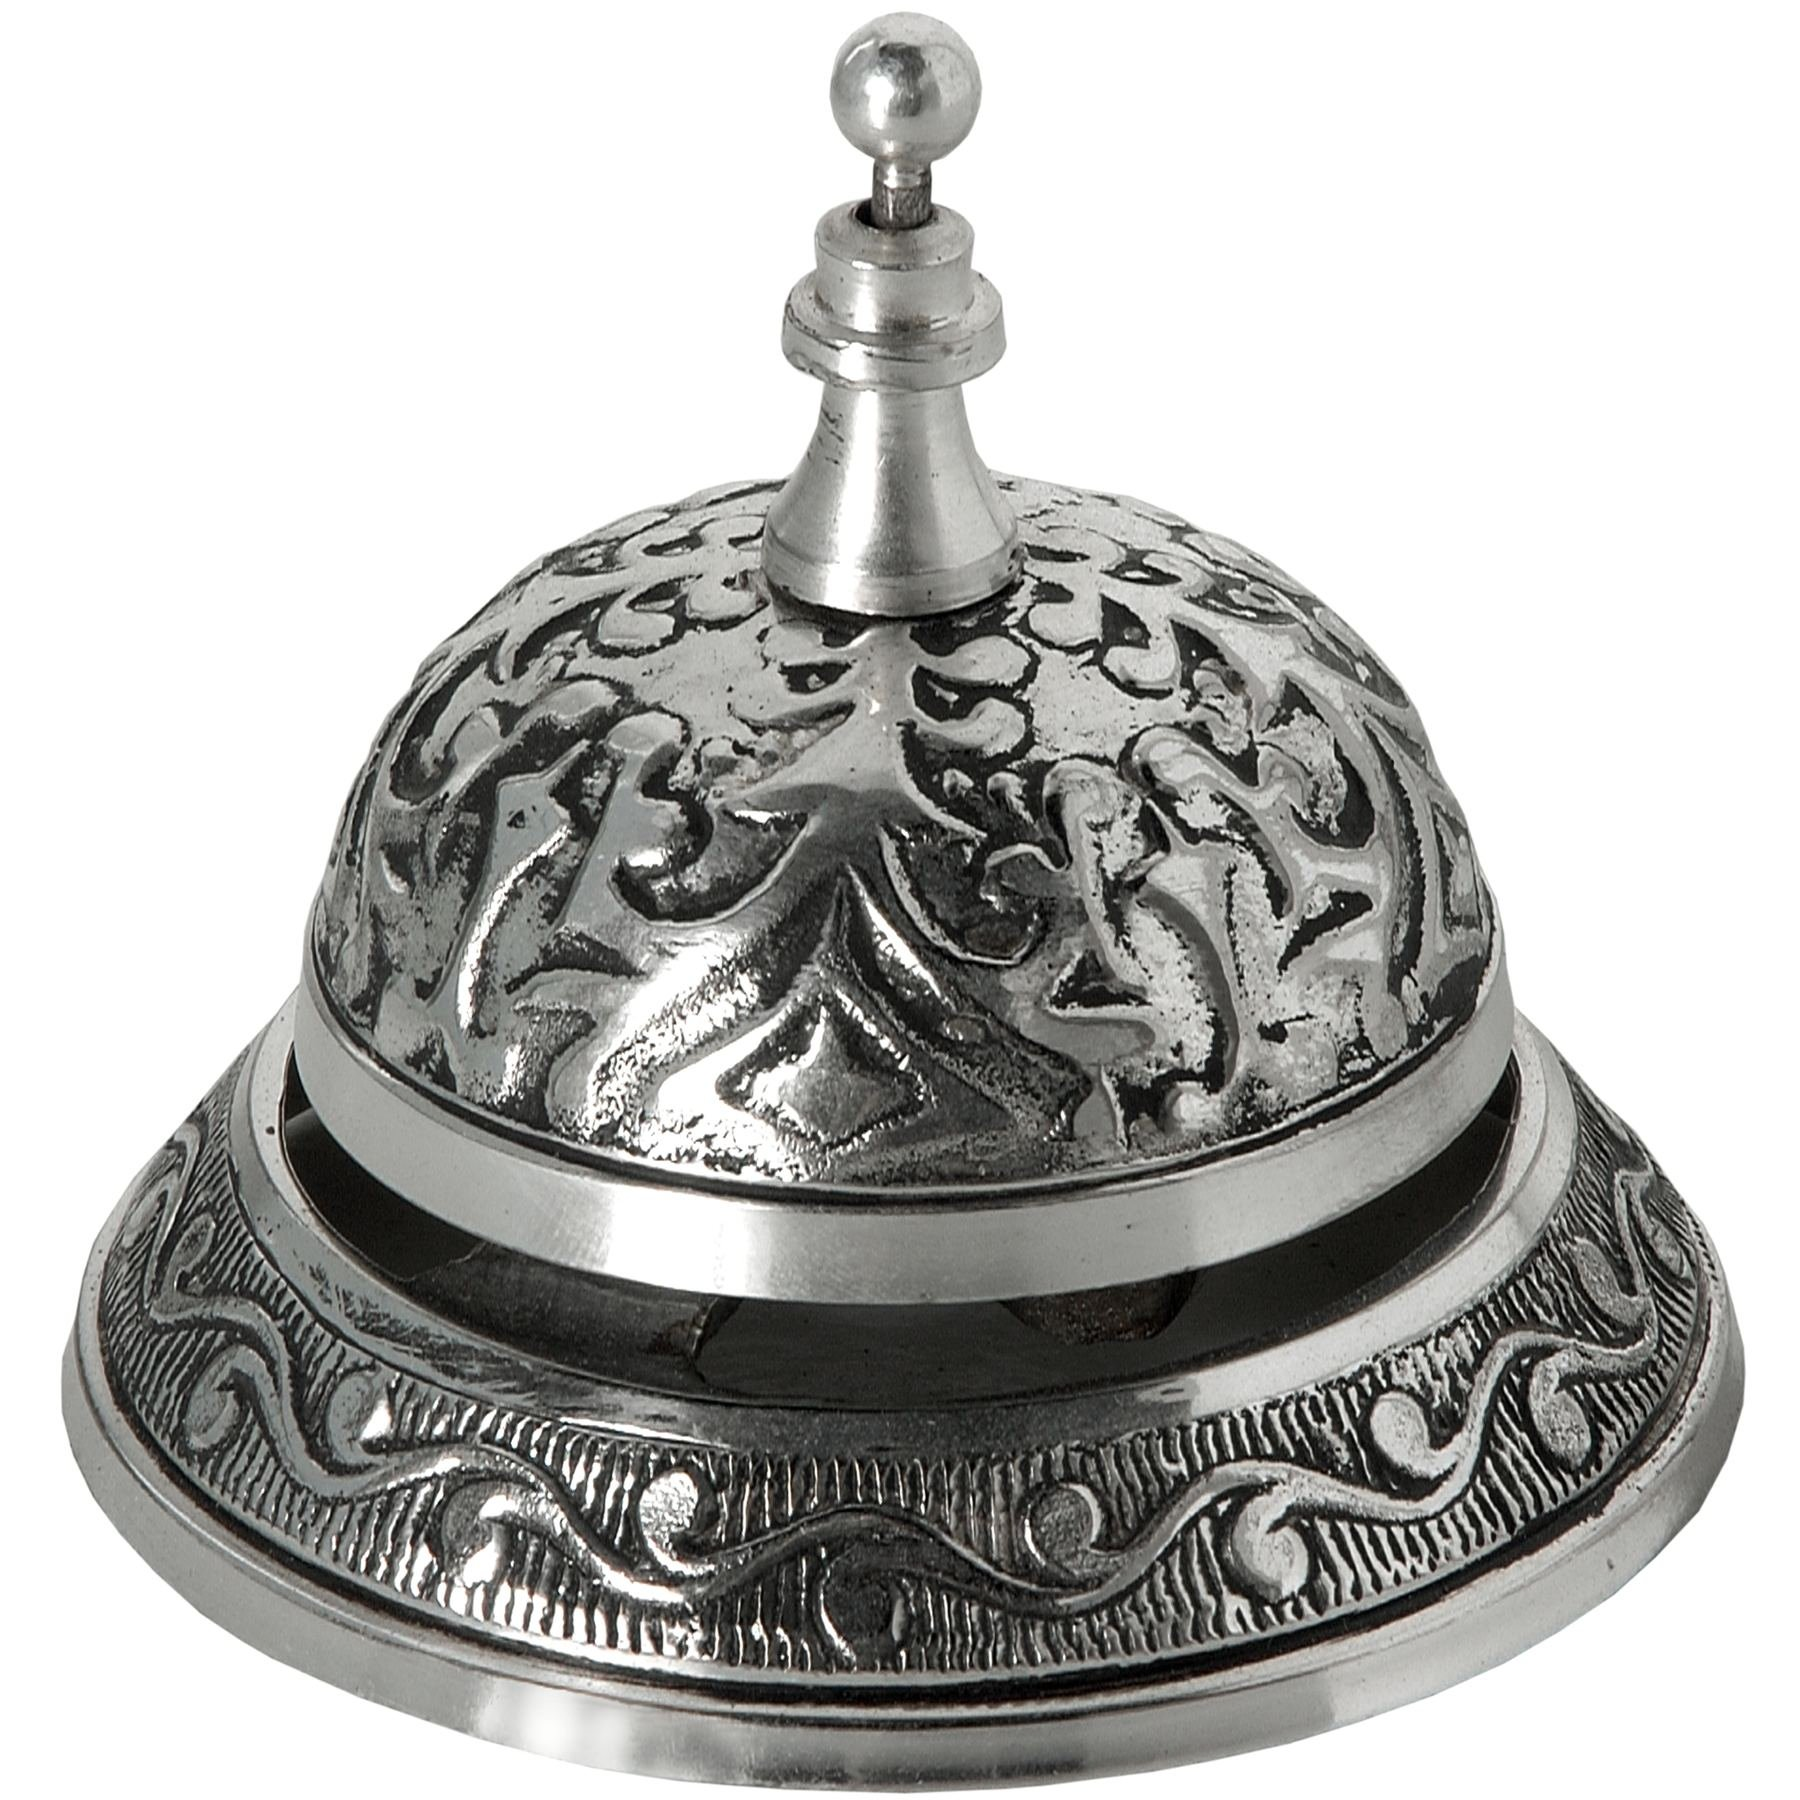 Hill Interiors Antique Silver Hotel/Service Desk Bell (One Size) (Silver)